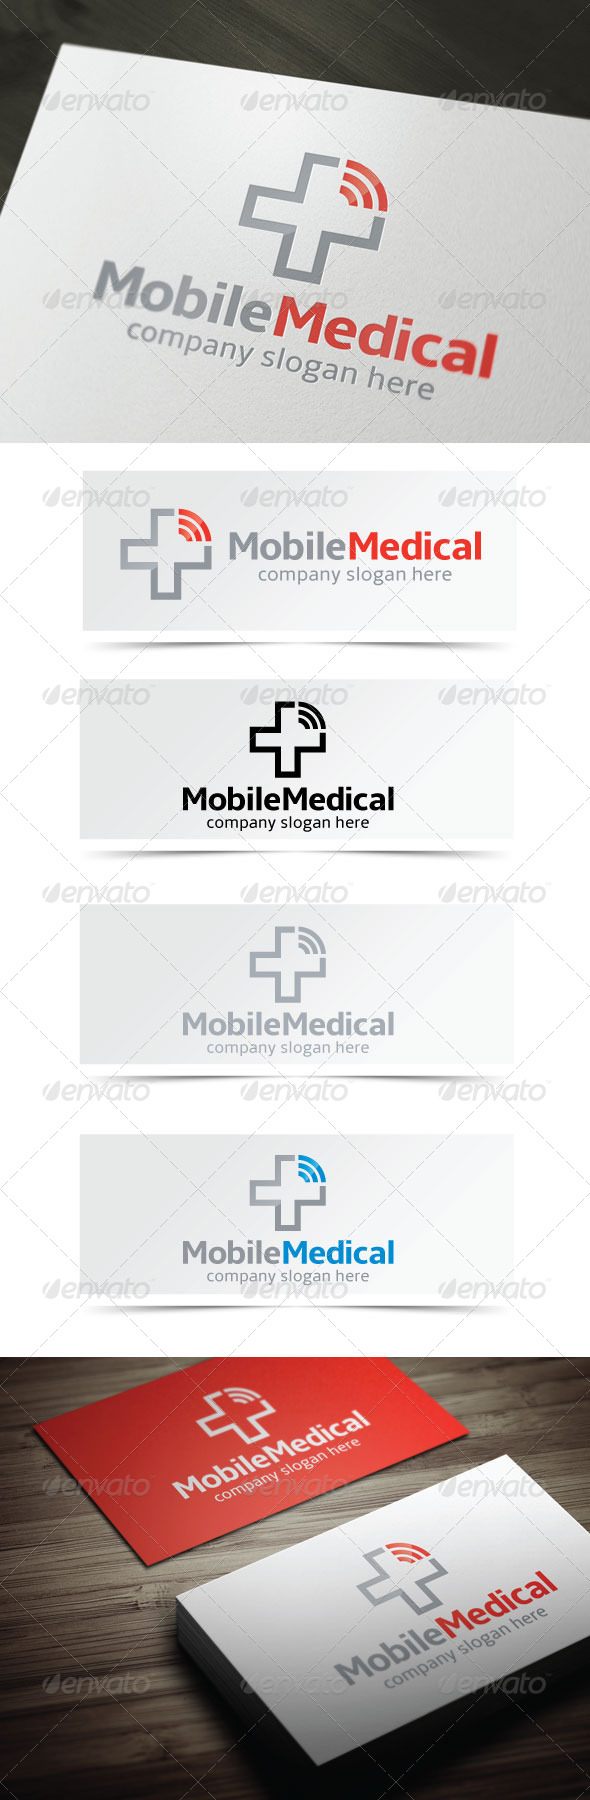 Mobile Medical - Symbols Logo Templates